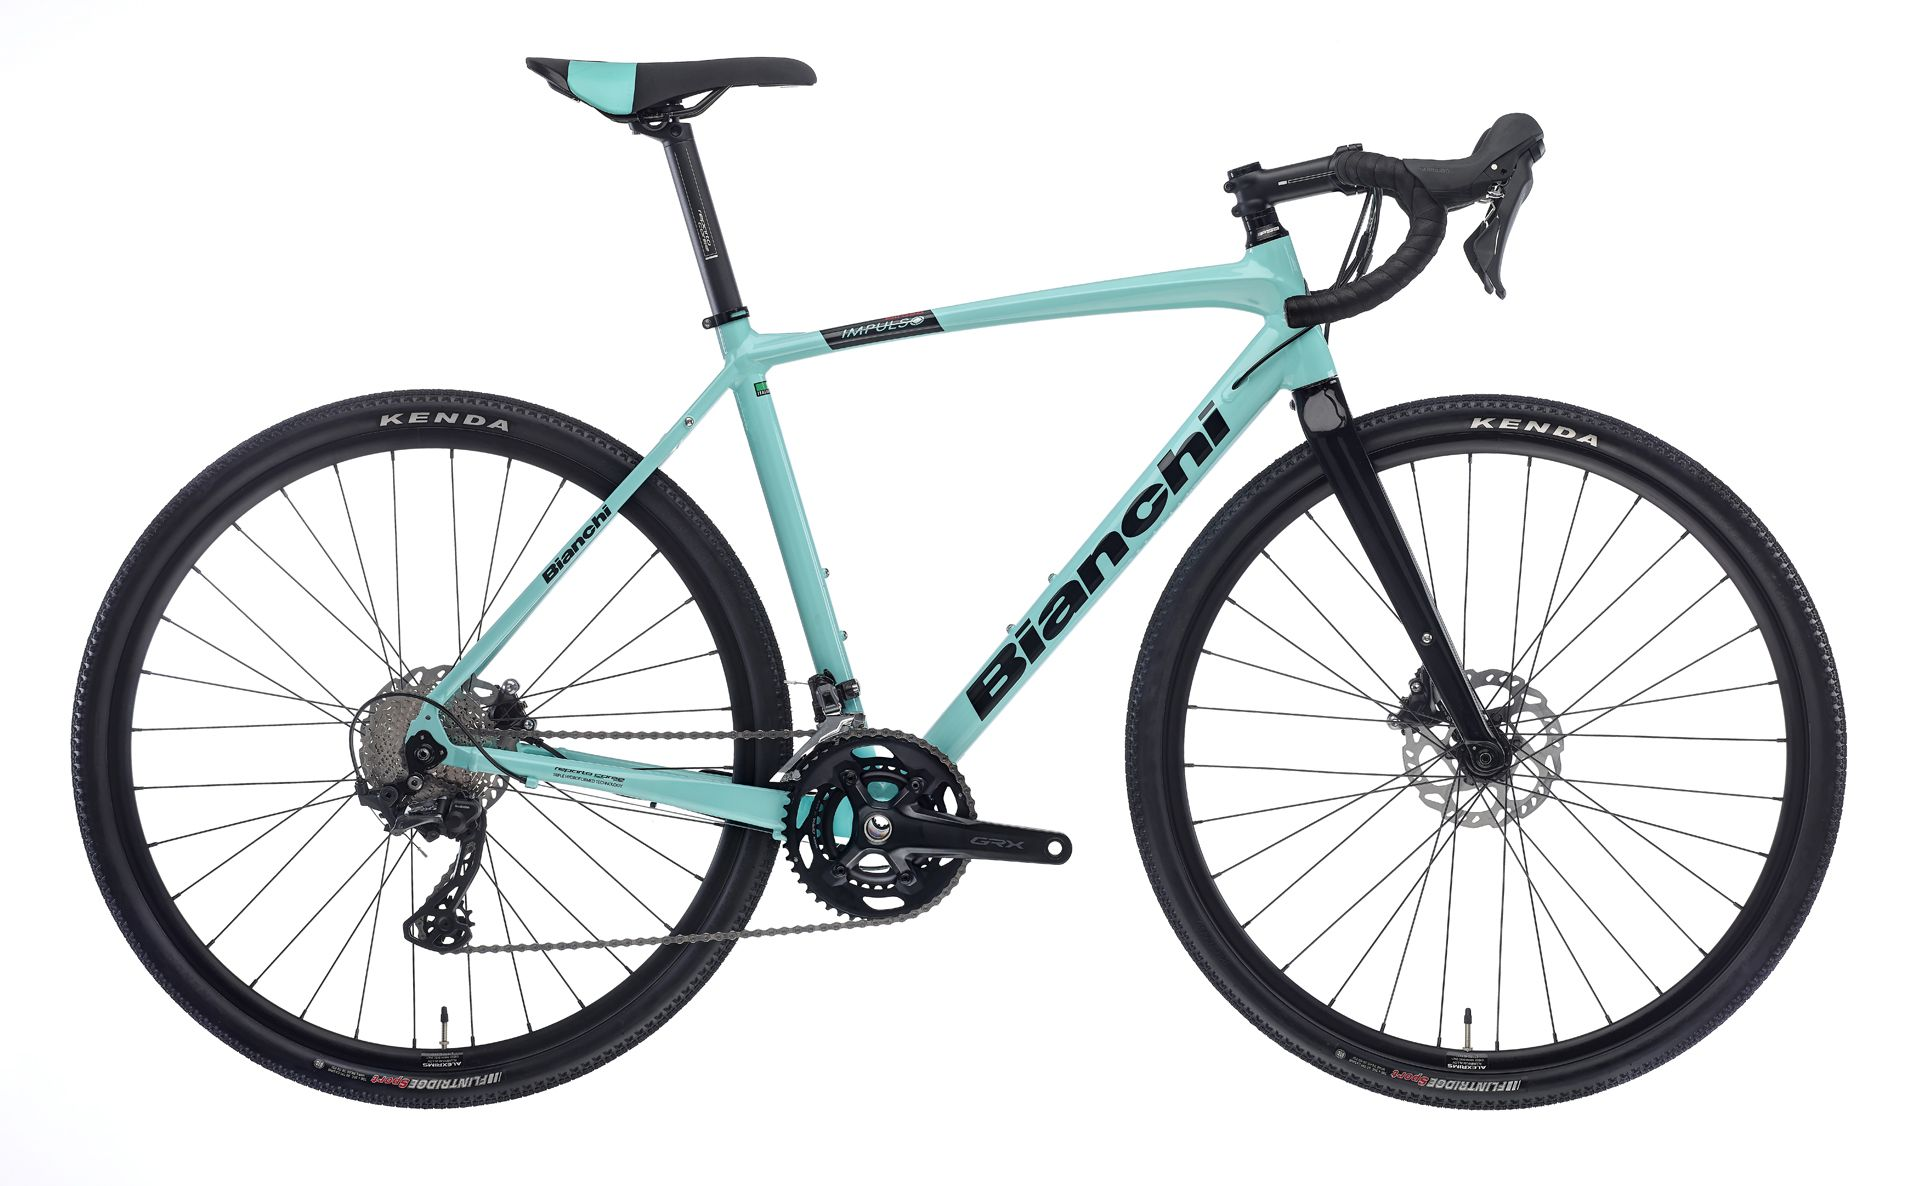 Impulso Allroad Grx 600 11sp Hydr Disc In 2020 Bianchi Bicycle Bicycle Mountain Bike Trails